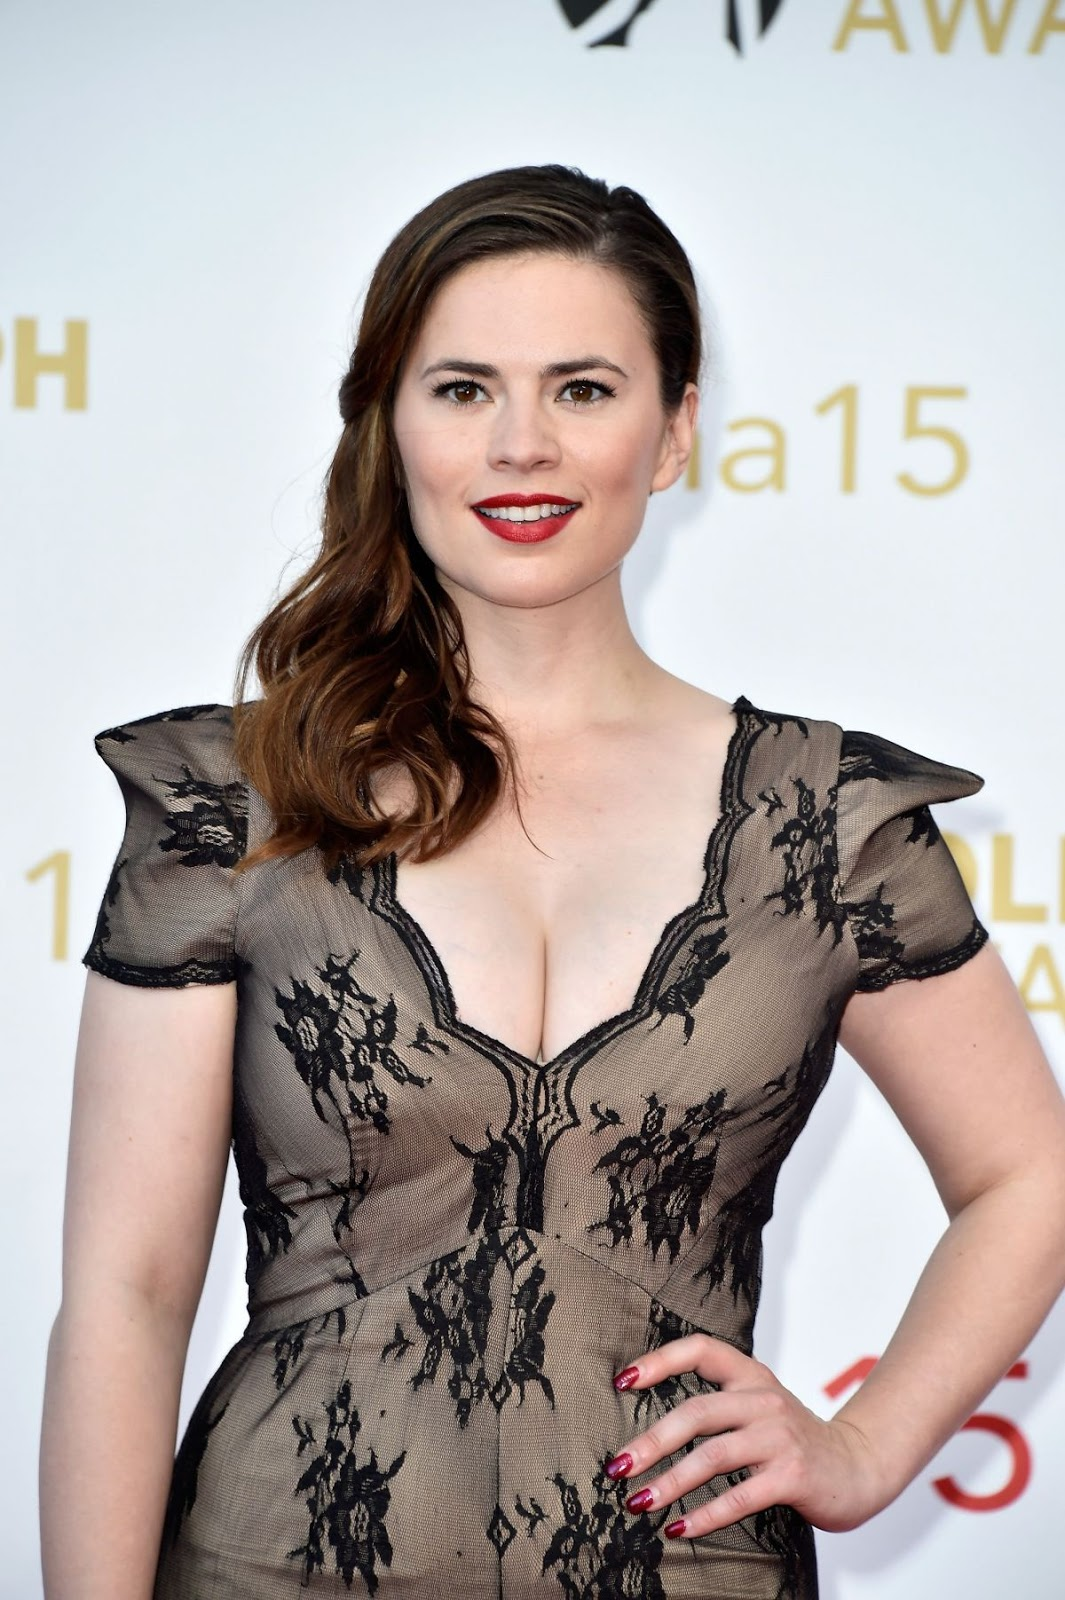 Hayley Atwell Hot Photos She was born on april 5, 1982, in london, england. hayley atwell hot photos